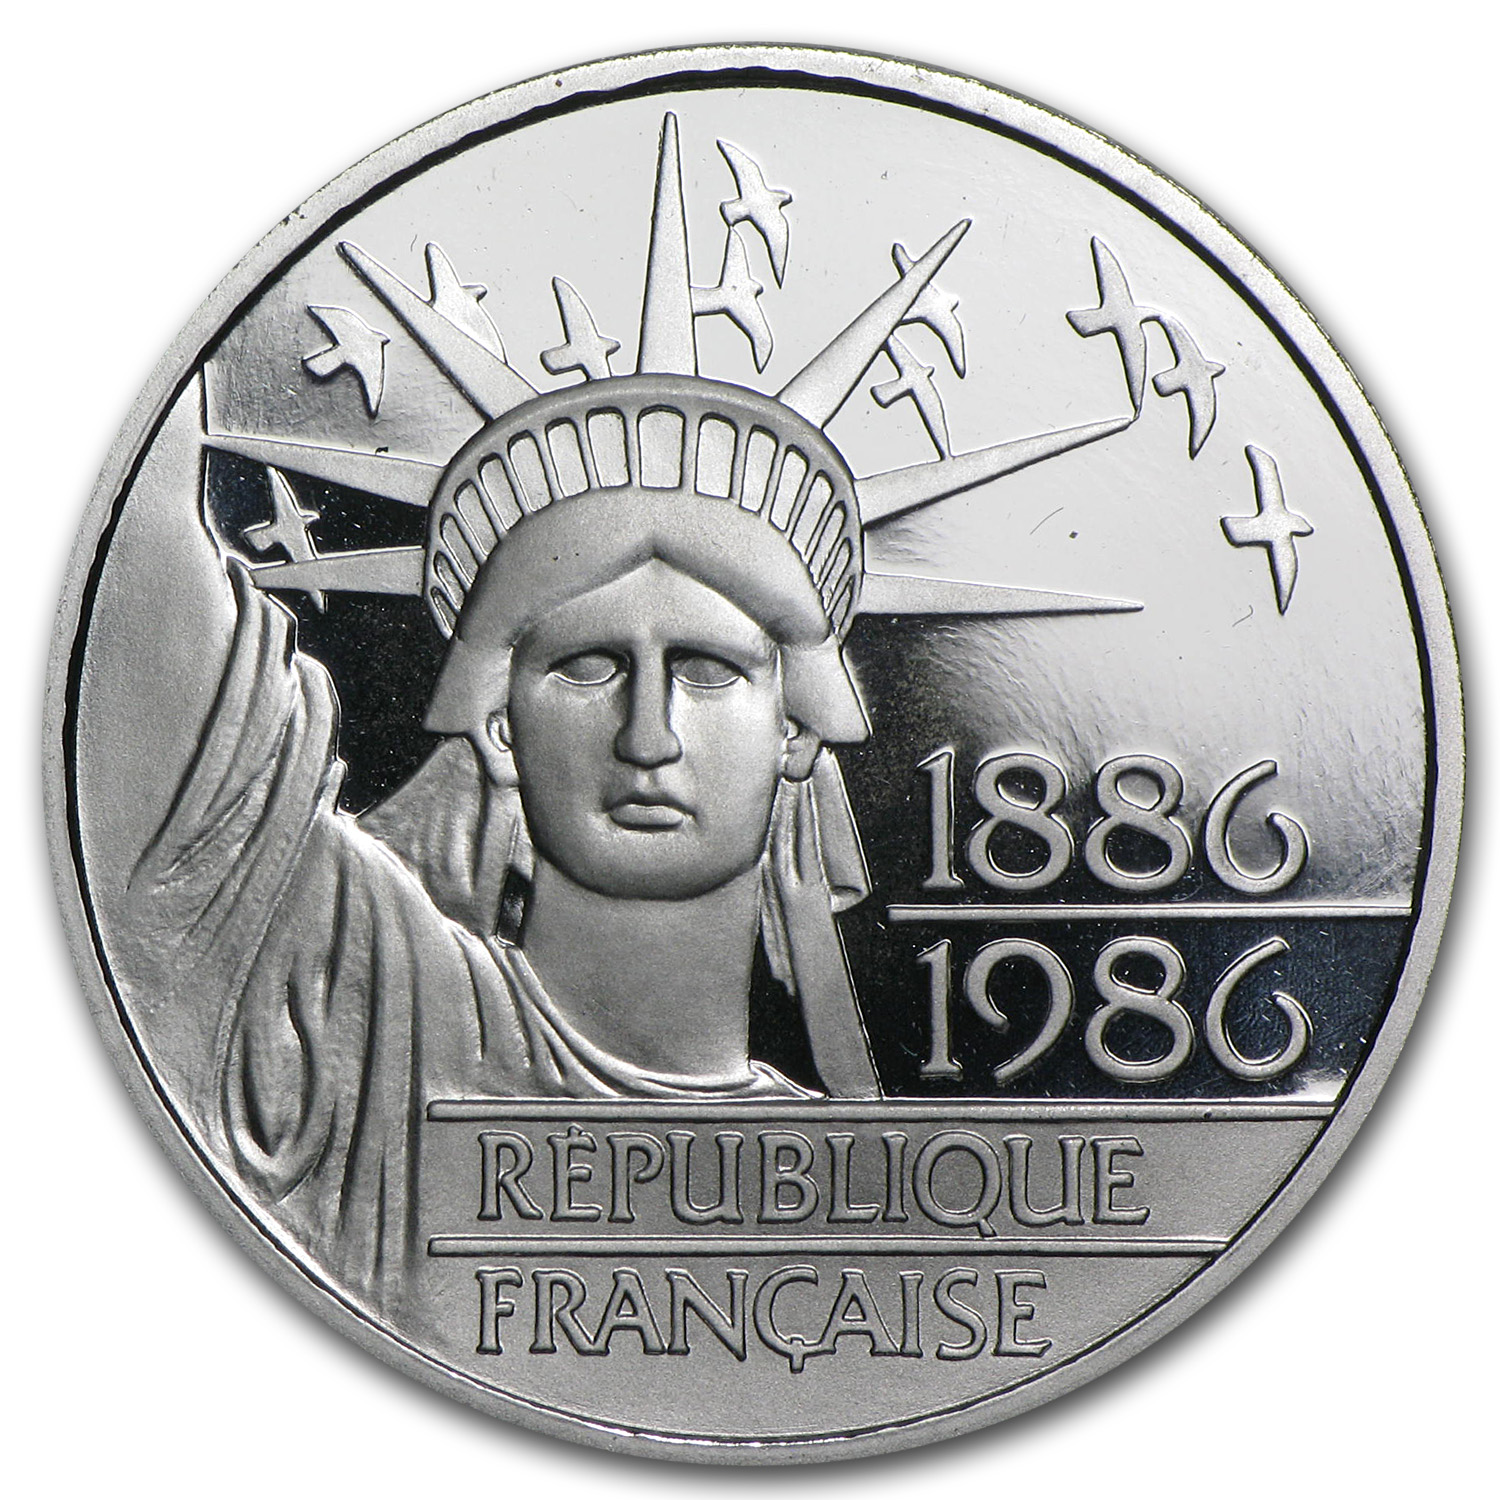 1986 Platinum 100 Francs Statue of Liberty Proof (APW .6430 oz)